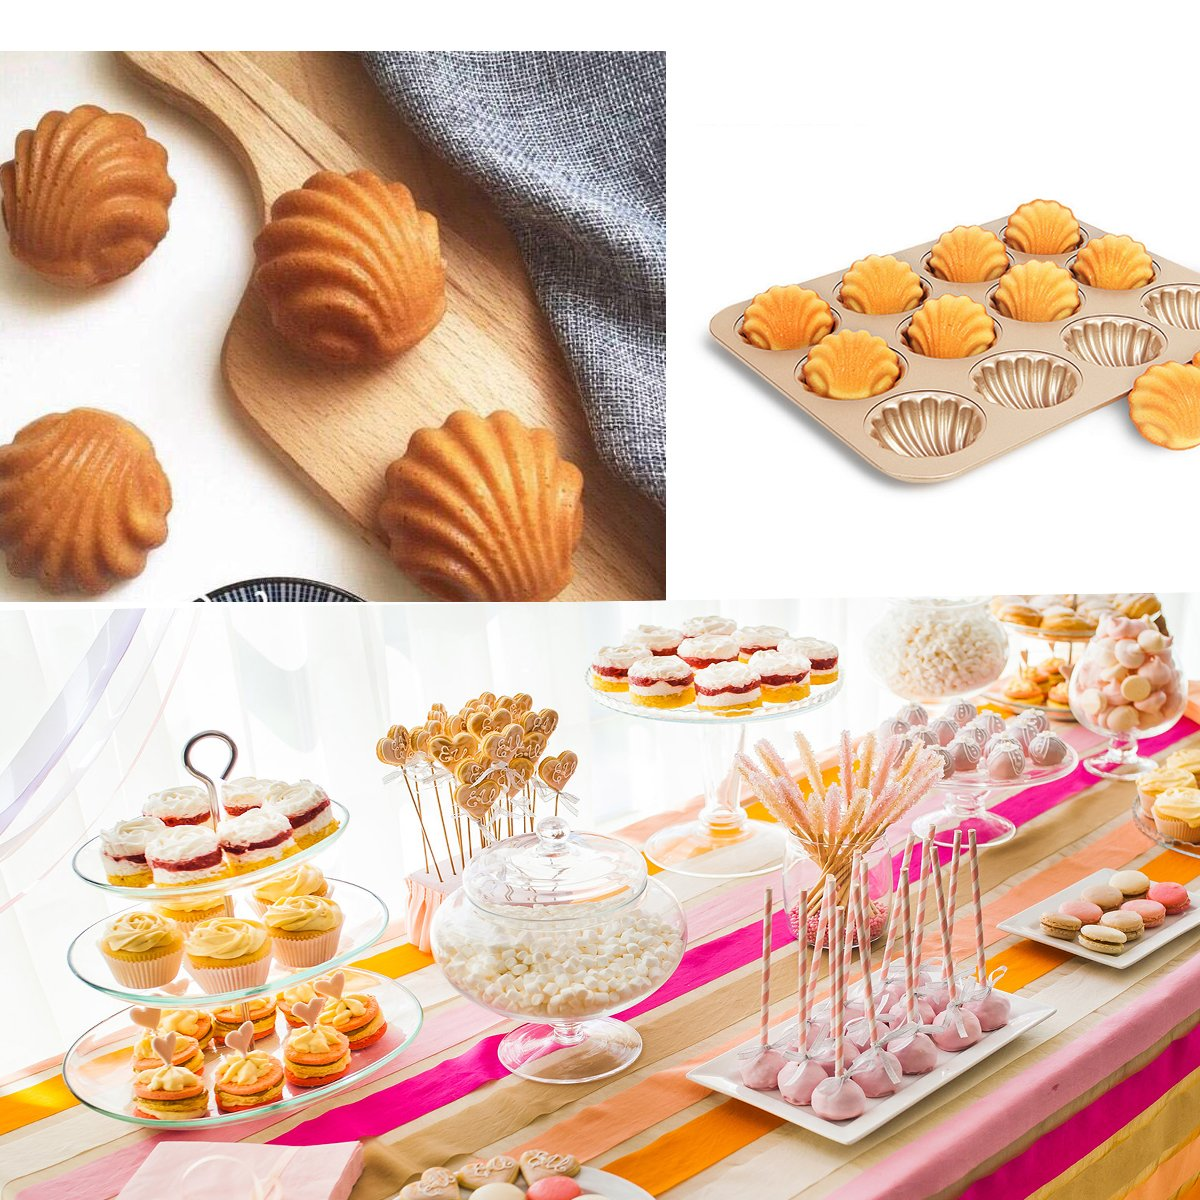 Madeleine Pans Baking Shell Mould Madeleine Cake Pan 12-cup Non Stick Gold Bakeware(madeleine pan)